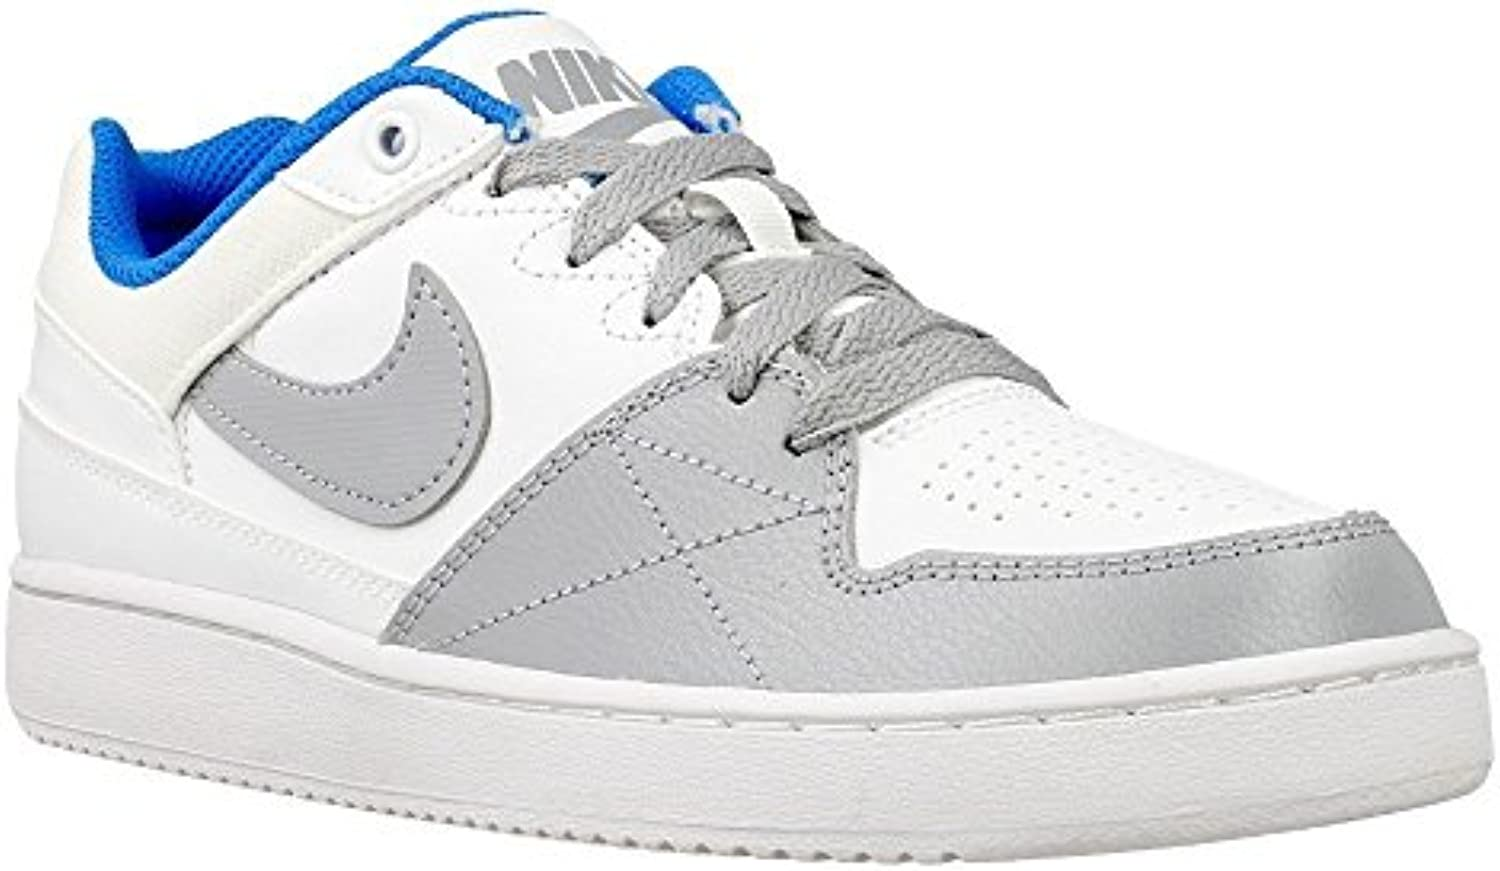 Nike Nike Nike - Nike Priority Low Gs Scarpe Sportive Donna Bianche 653672  - Bianco f79d41c40be